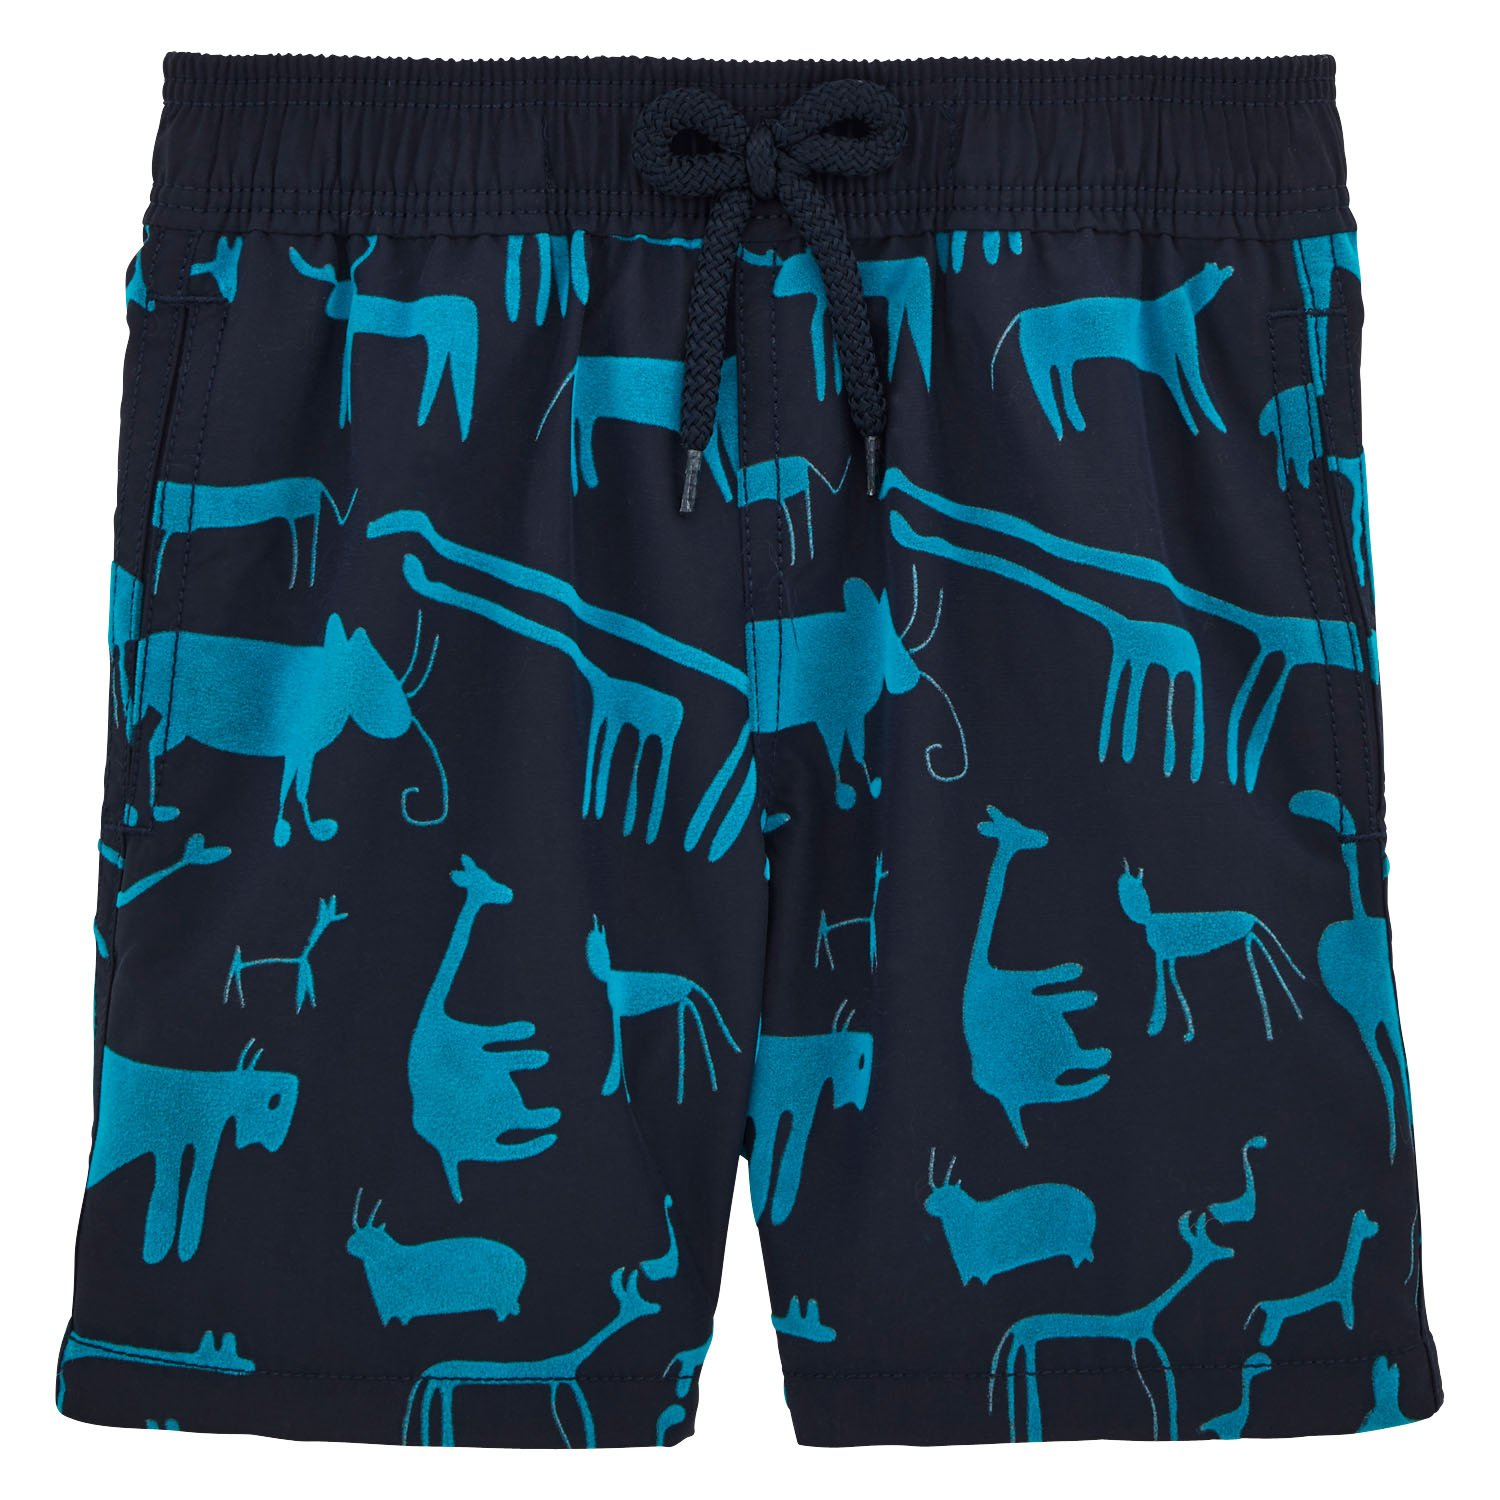 Vilebrequin Primitive Art Flock Swim Shorts - Boys - navy - 6Yrs by Vilebrequin